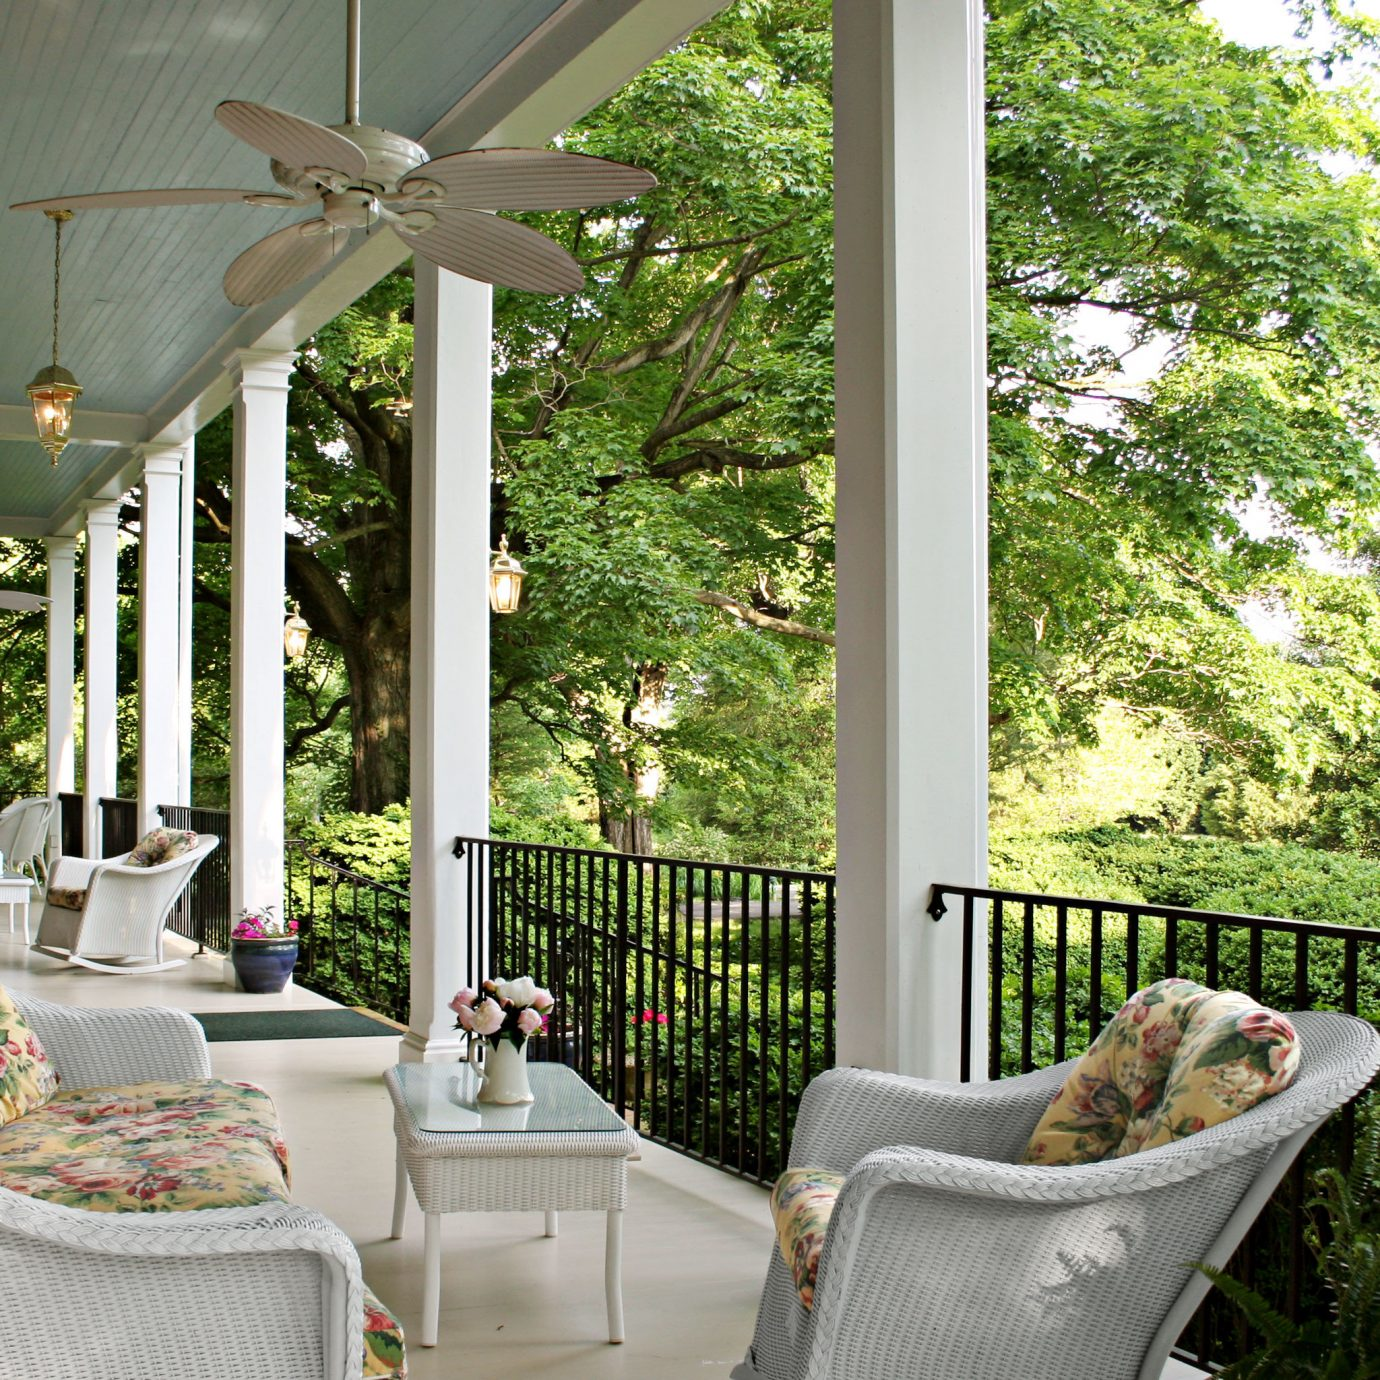 B&B Balcony Classic Country Drink Eat Grounds Inn Romantic tree property building porch backyard home Garden outdoor structure flower cottage yard Courtyard Villa